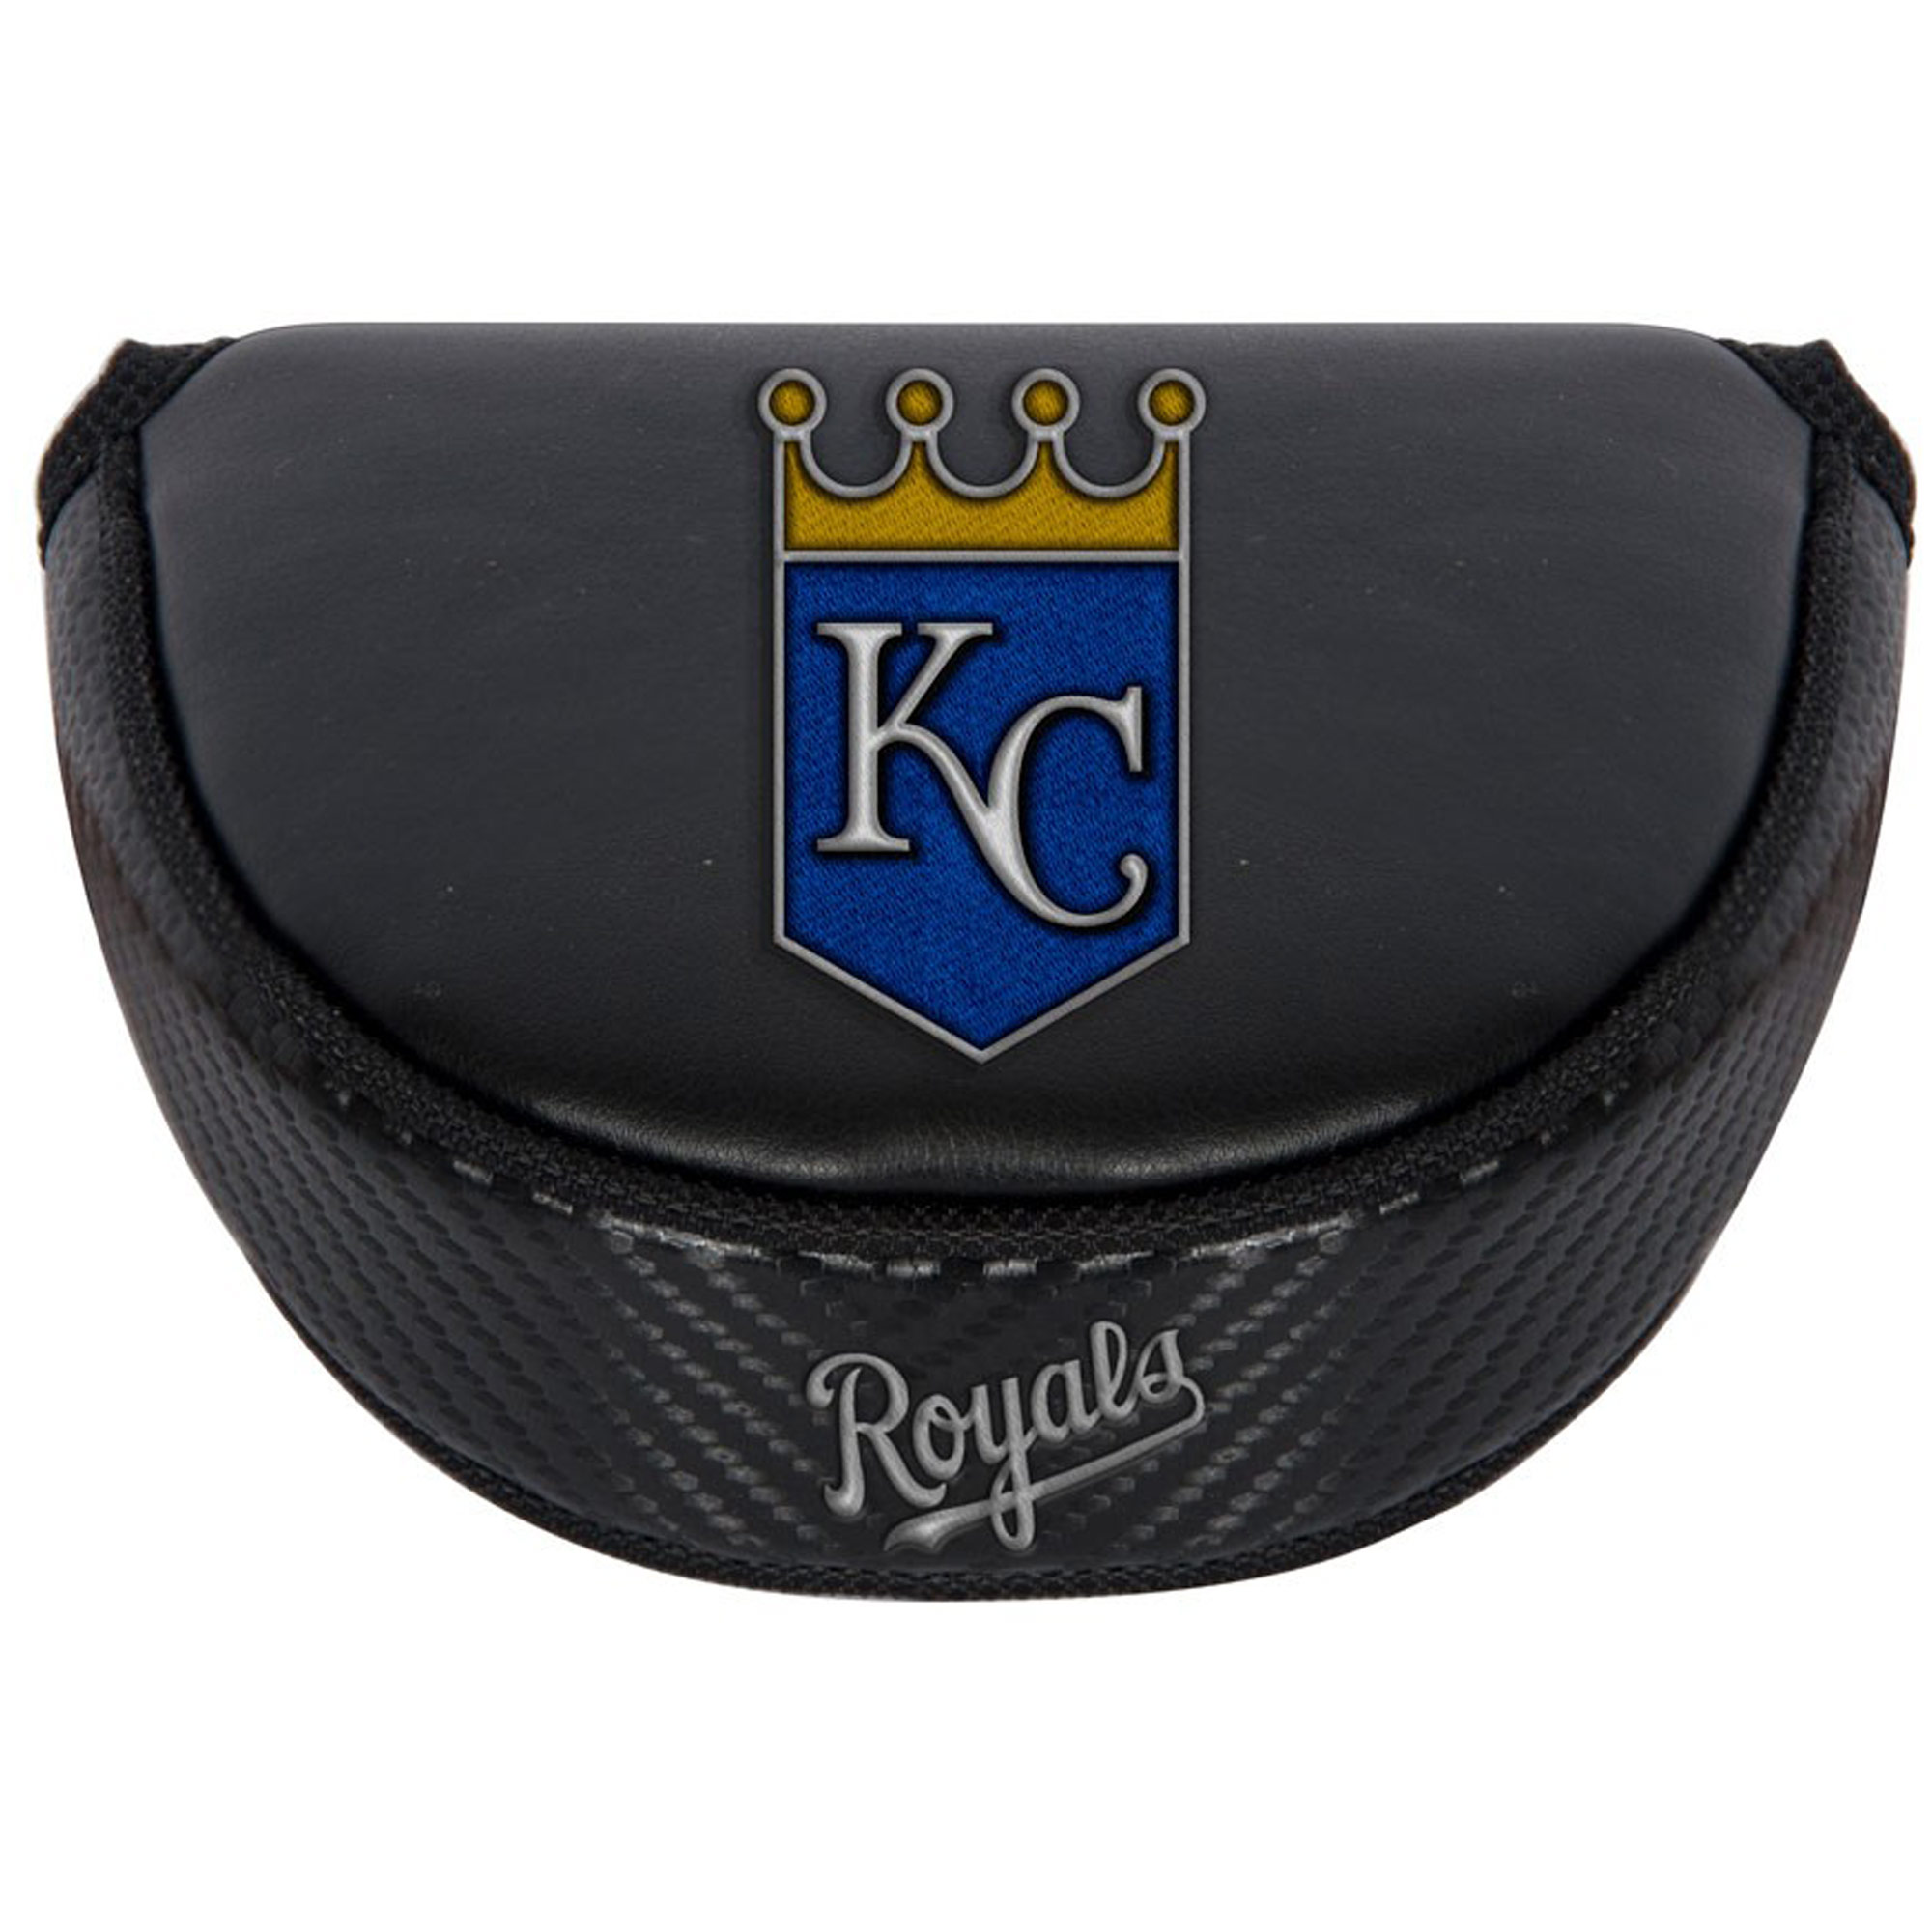 Kansas City Royals Putter Mallet Cover - No Size